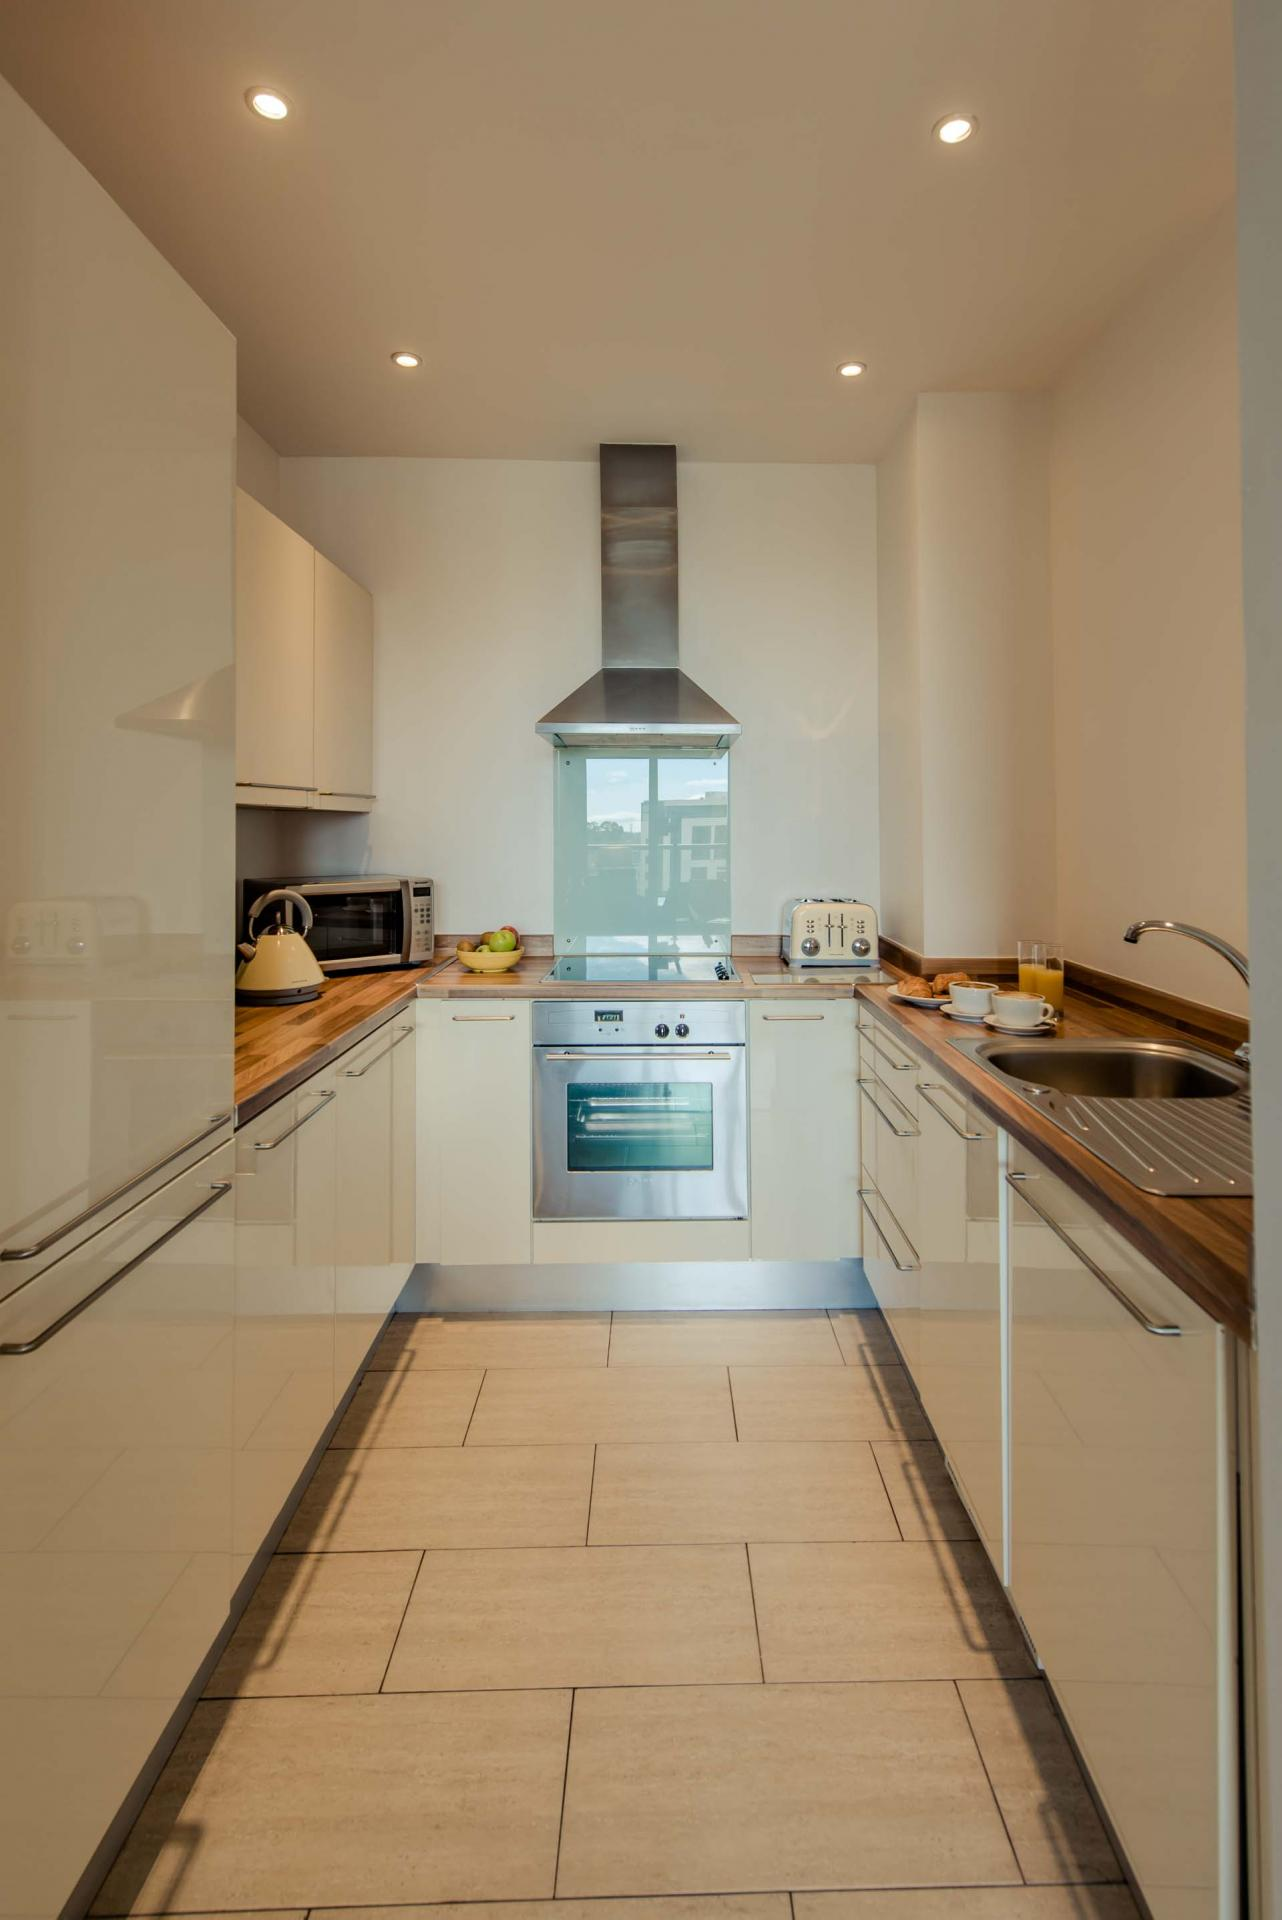 Kitchen at Premier Suites Dublin Sandyford, Sandyford, Dublin - Citybase Apartments